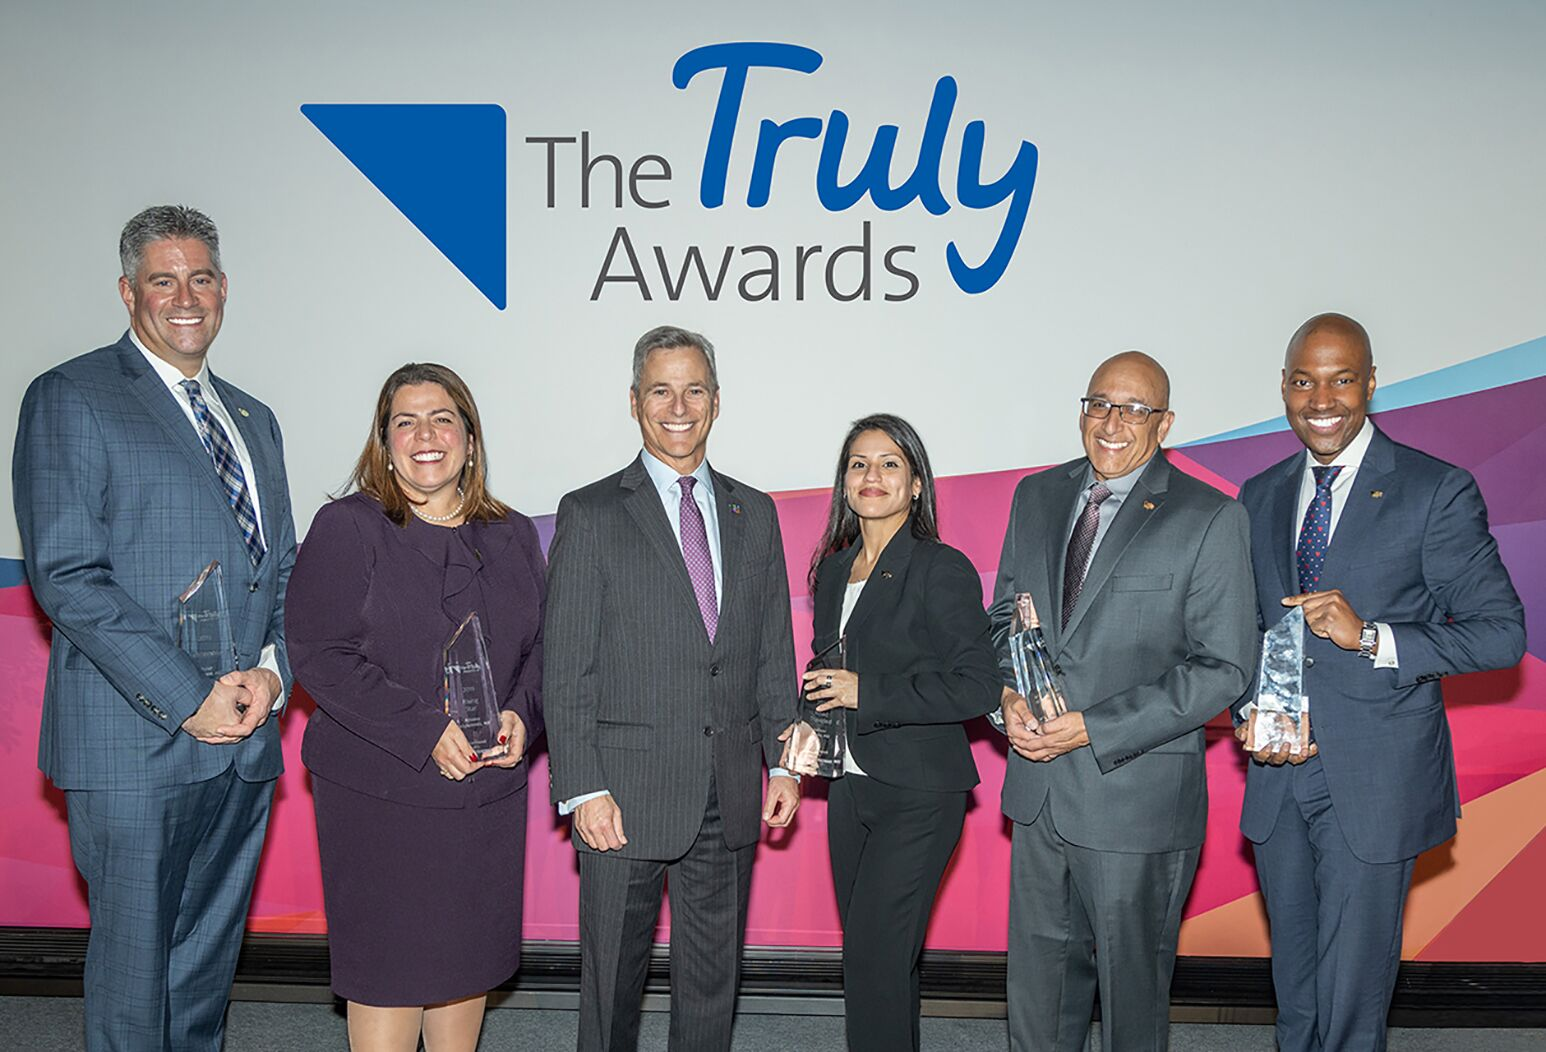 Northwell Health Physician Partners honors The Truly Award Winners. From left: Peter Finamore, MD; Kristina Deligiannidis, MD; Ira Nash, MD; Julissa Jurado, MD; Mansoor Beg, MD; and Yves Duroseau, MD.